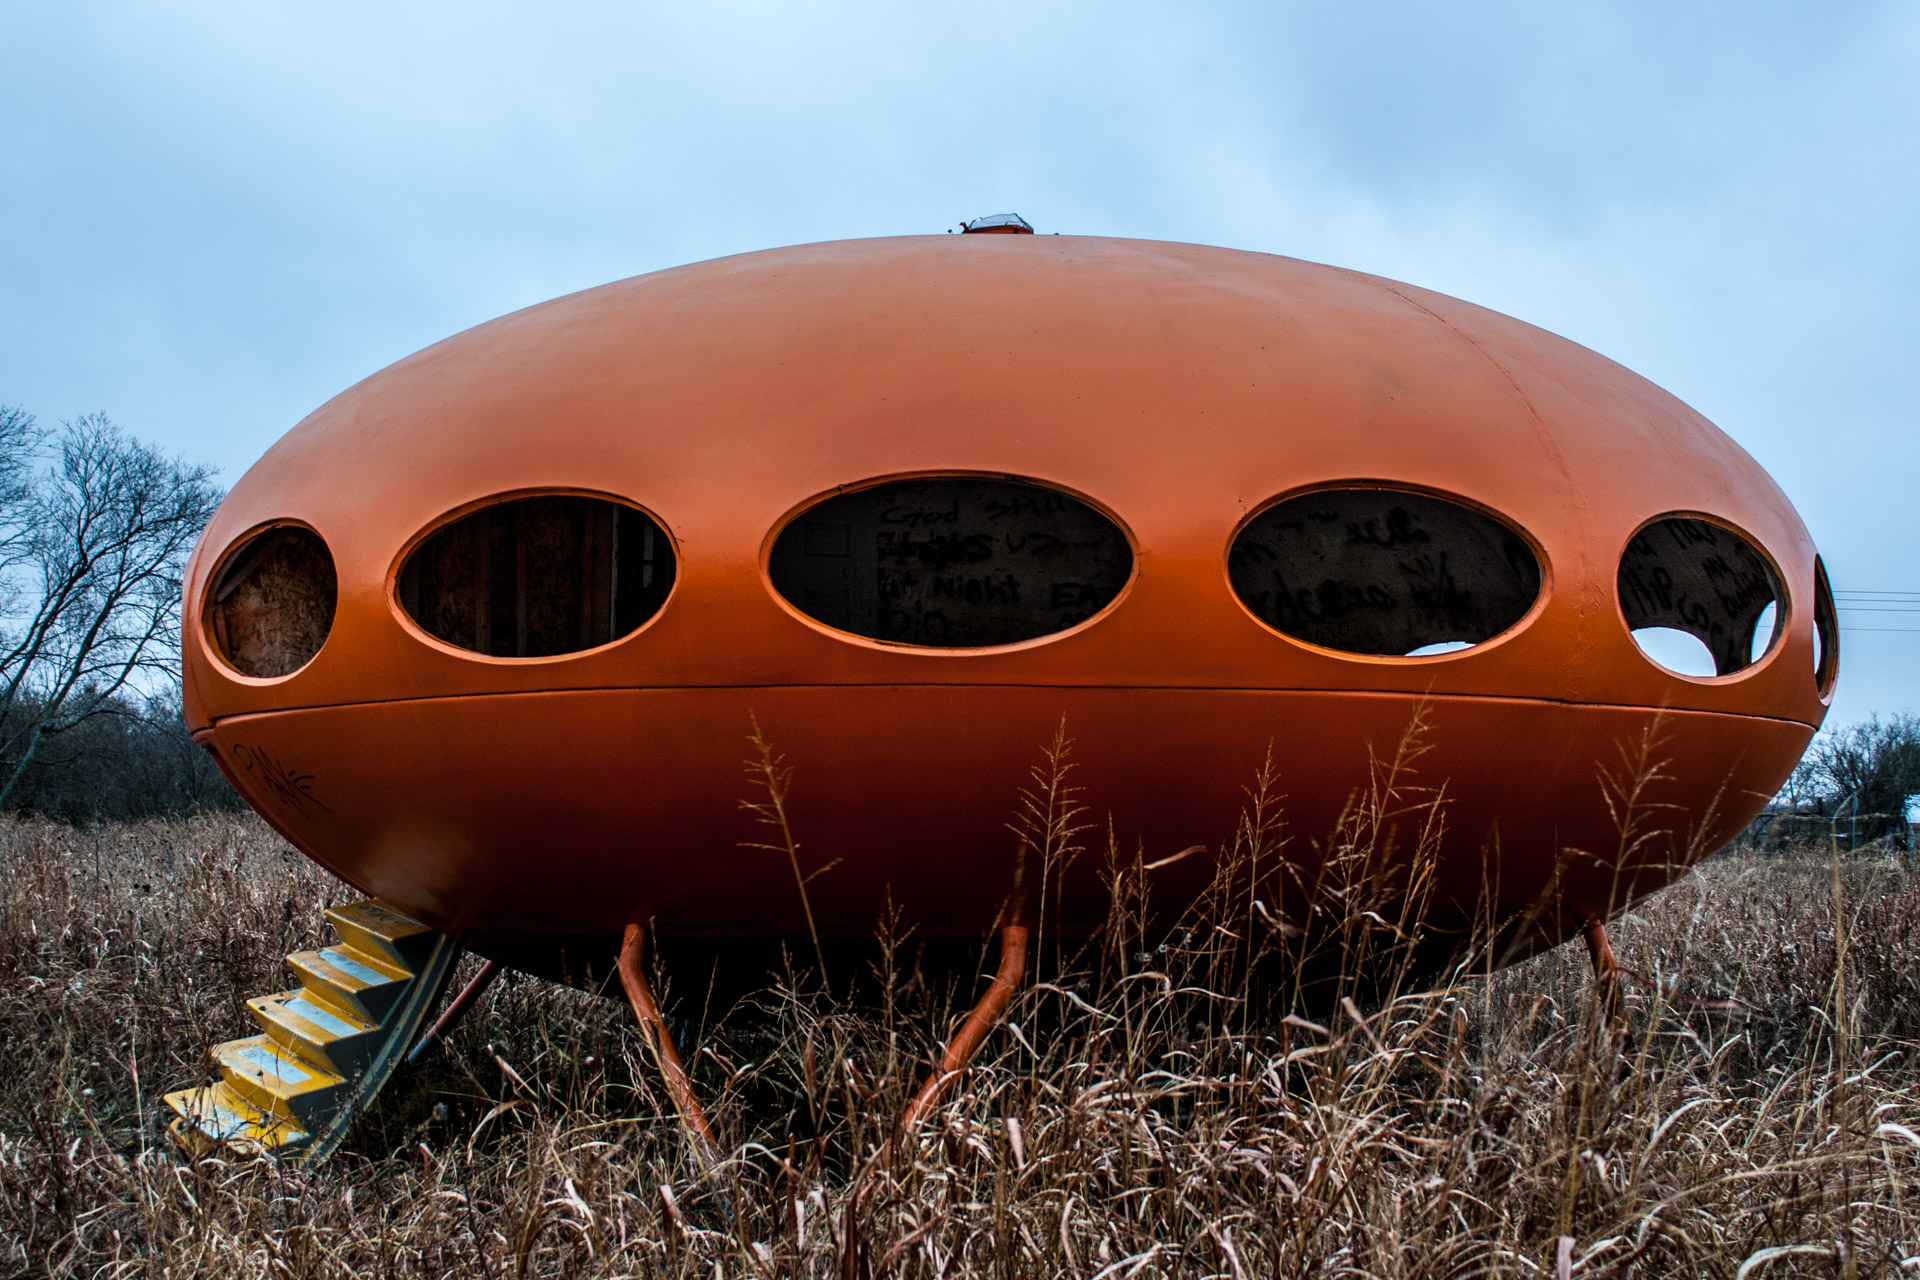 Royse City, Texas - The Orange Futuro House (stair side)